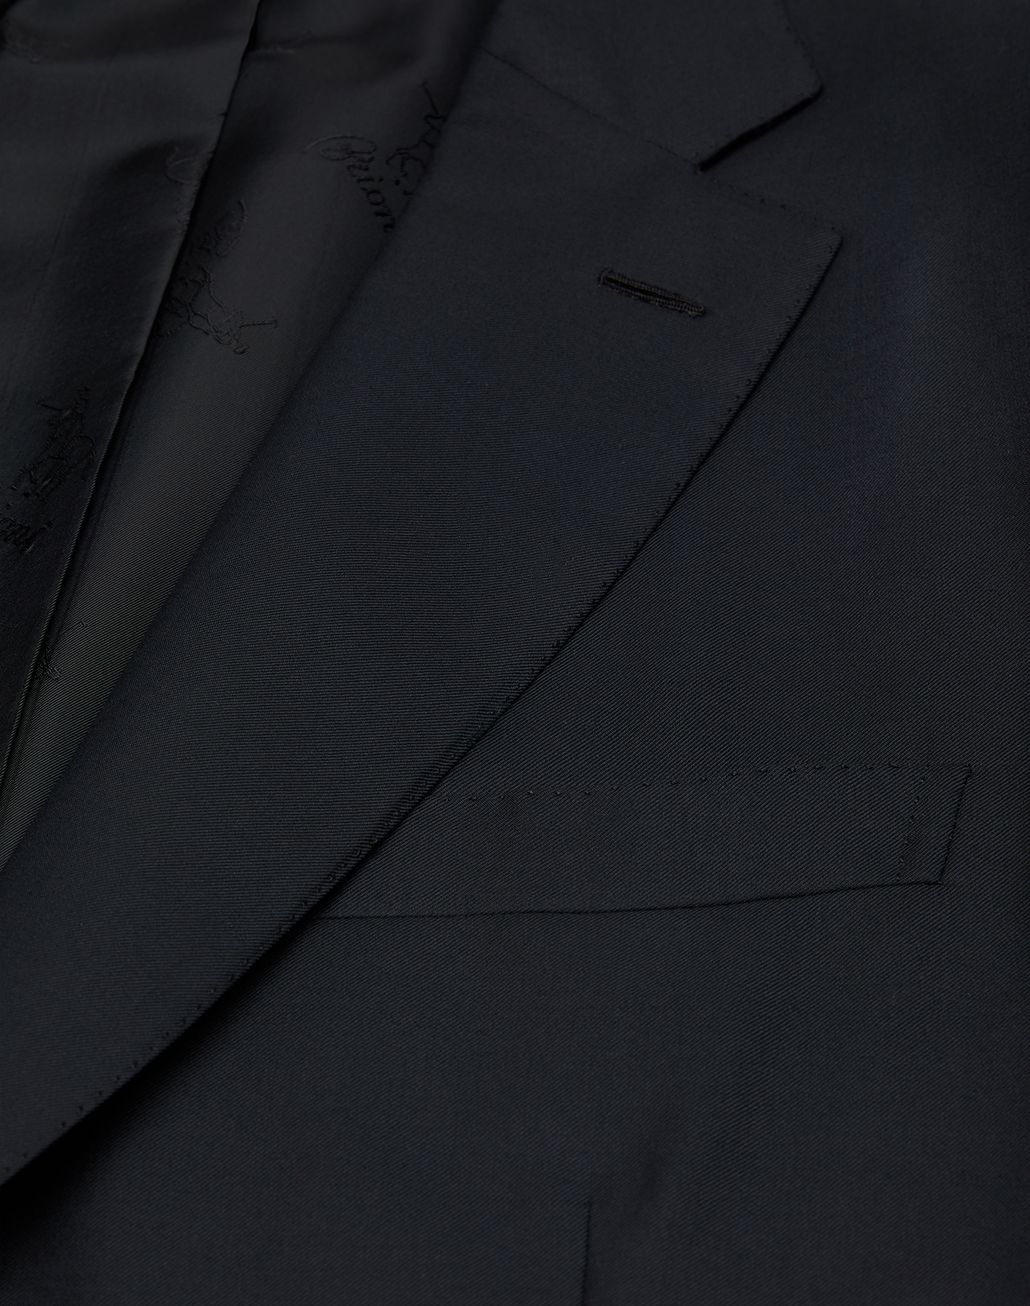 BRIONI 'Essential' Black Brunico Suit Suits & Jackets Man a